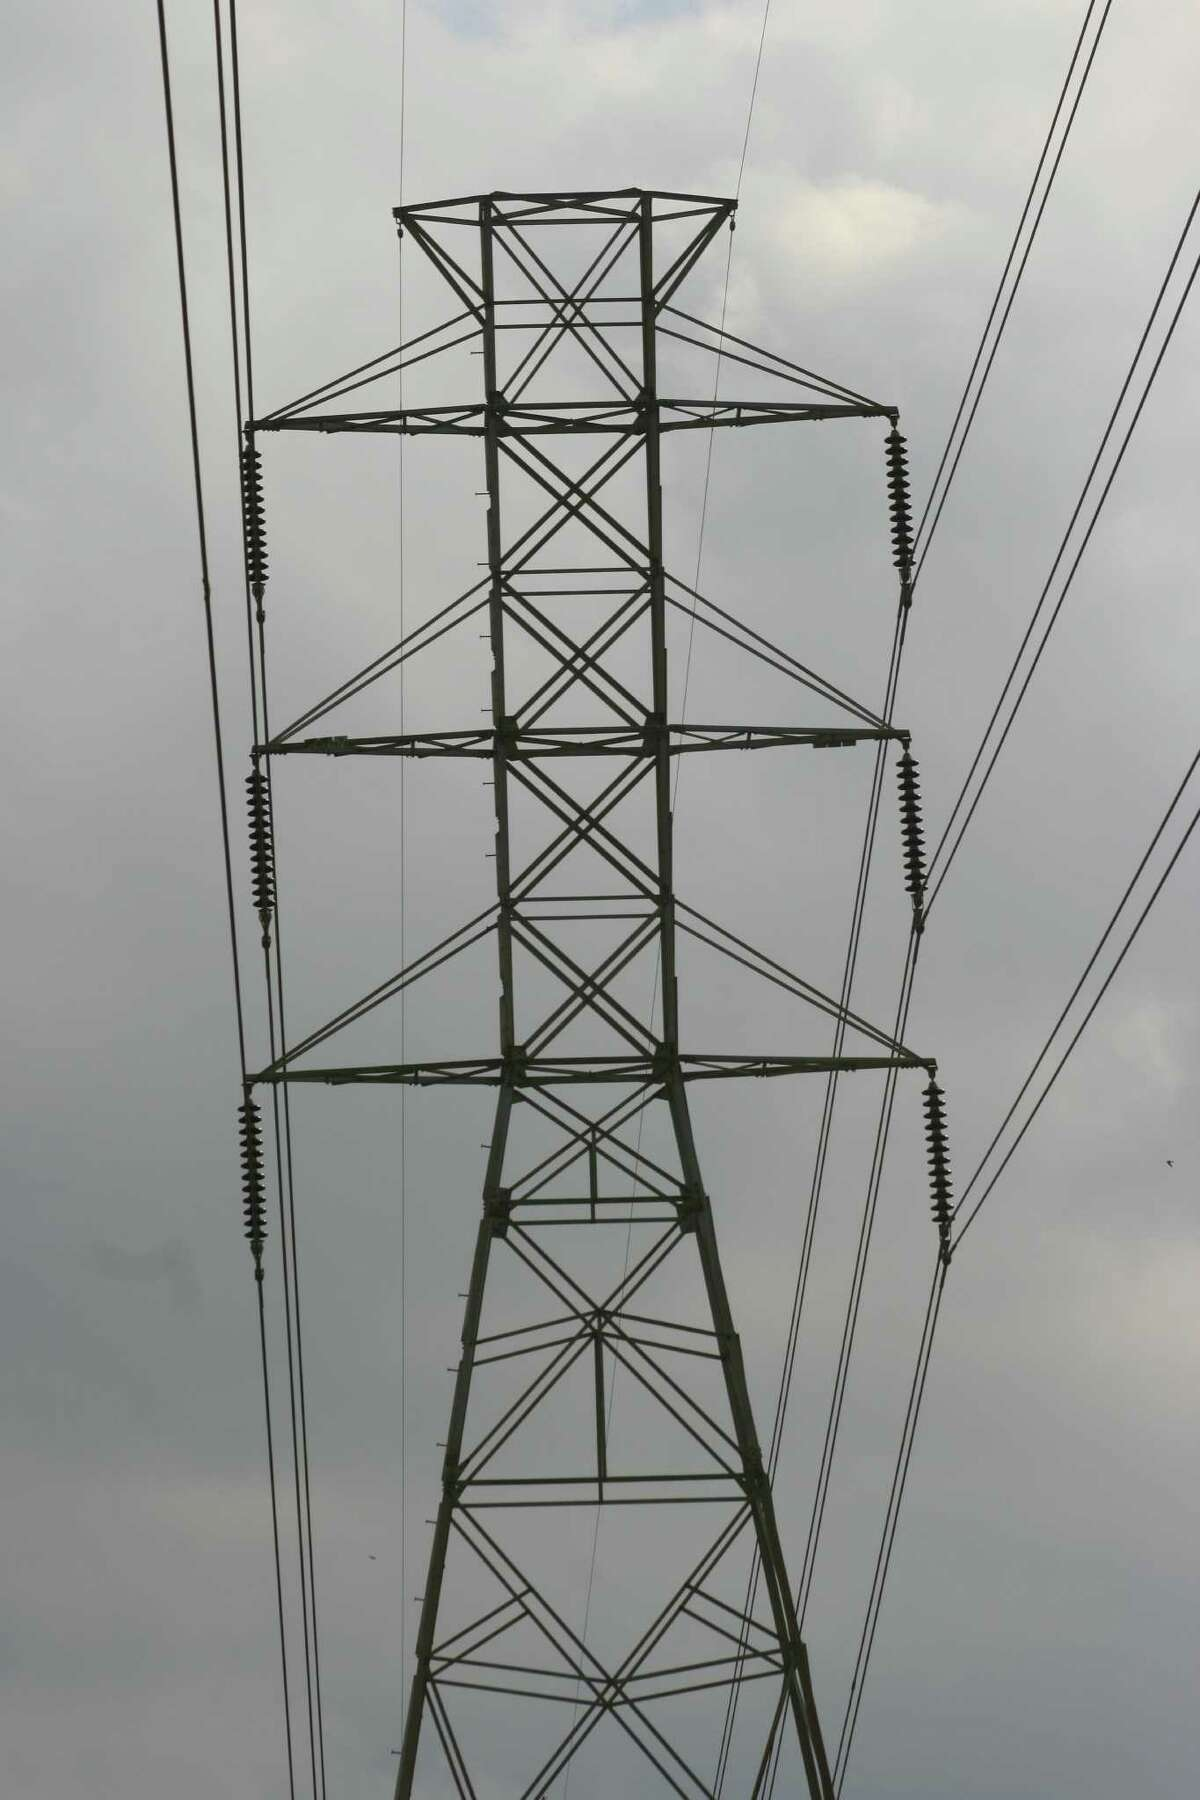 Some argue that Texas' autonomy in regulating its electrical grid is imperiled by the Cross-State Rule, the EPA's effort to deal with the thorny problem of interstate pollution..